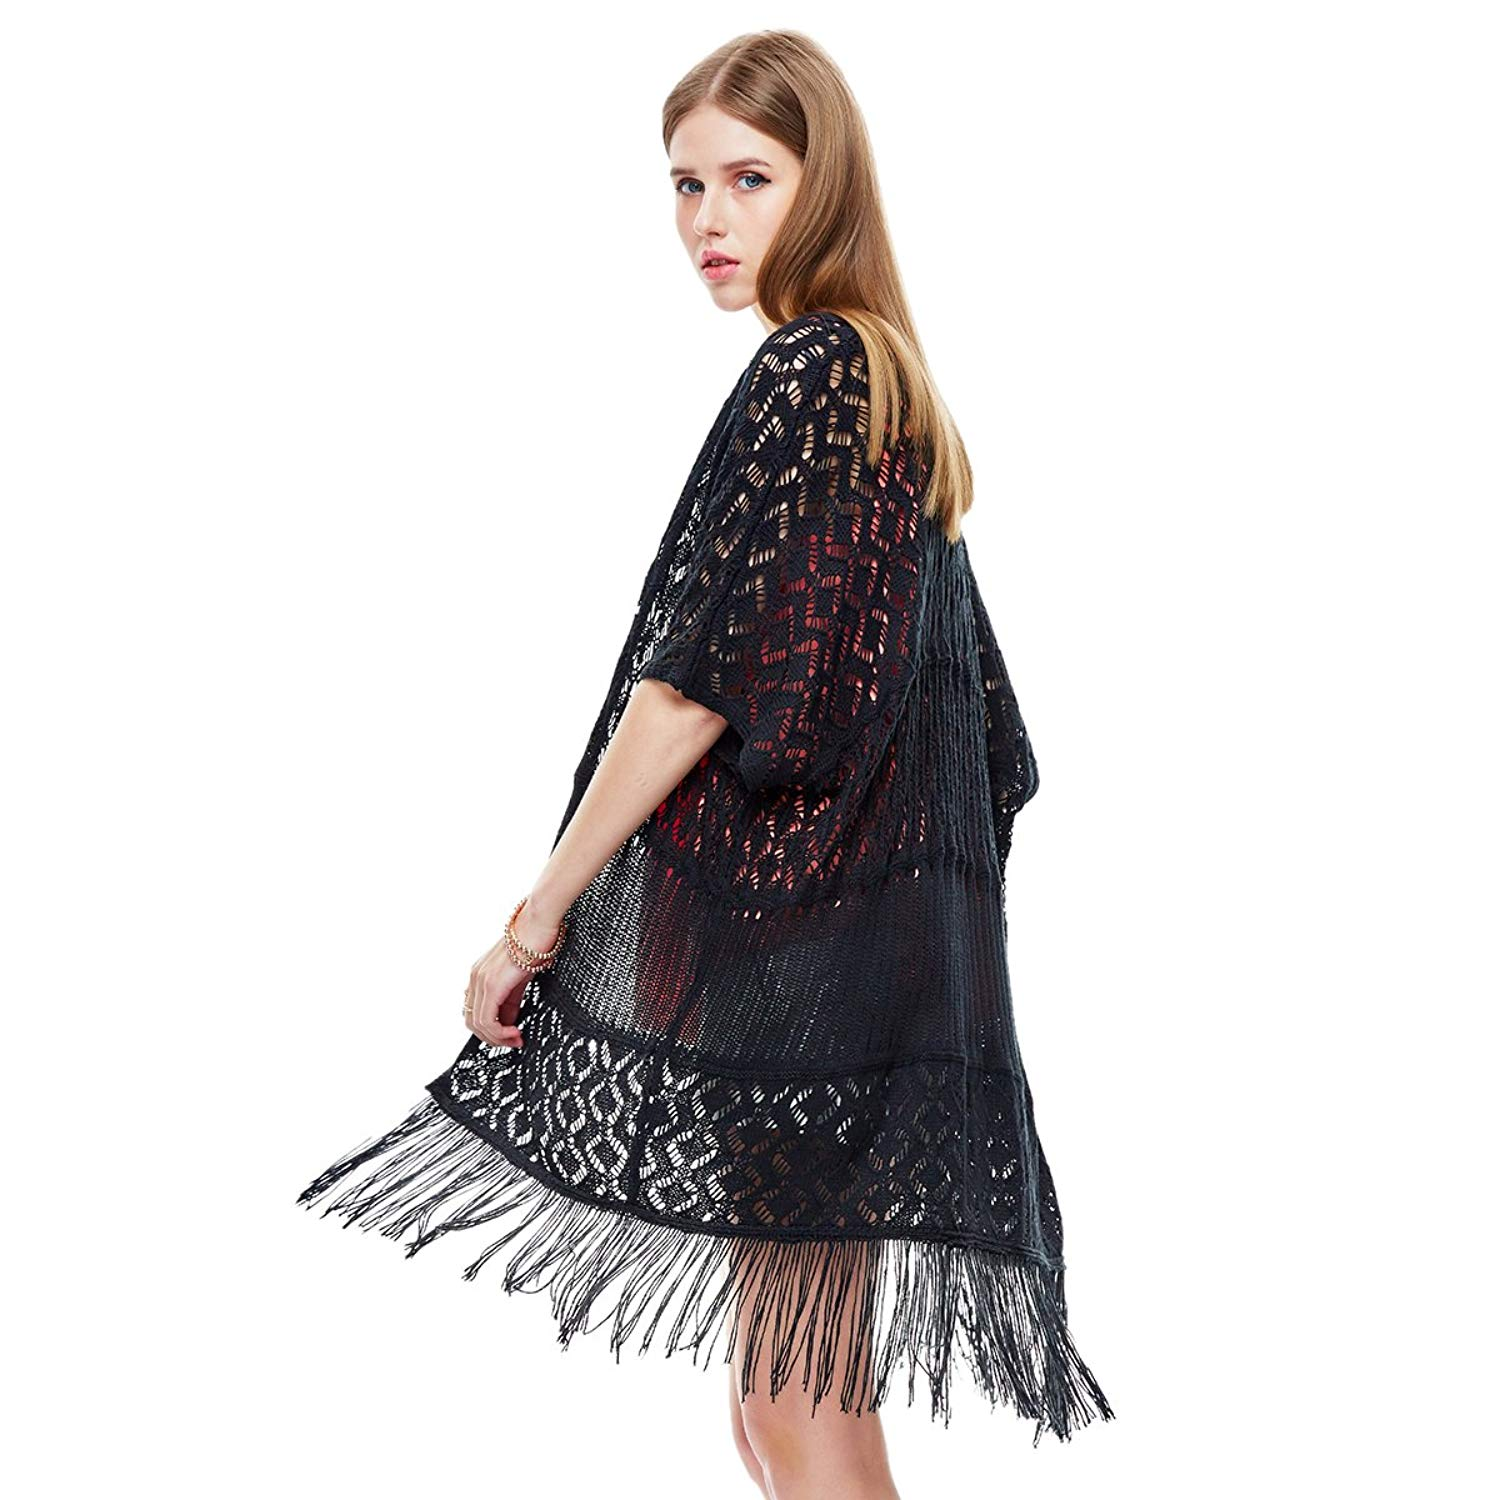 c676d2c1f0 Get Quotations · Heart Soul Women s Lace Cardigan Kimono Outfit Beach Dress  Cover up Swimwear Bikini Lace Long Tassel